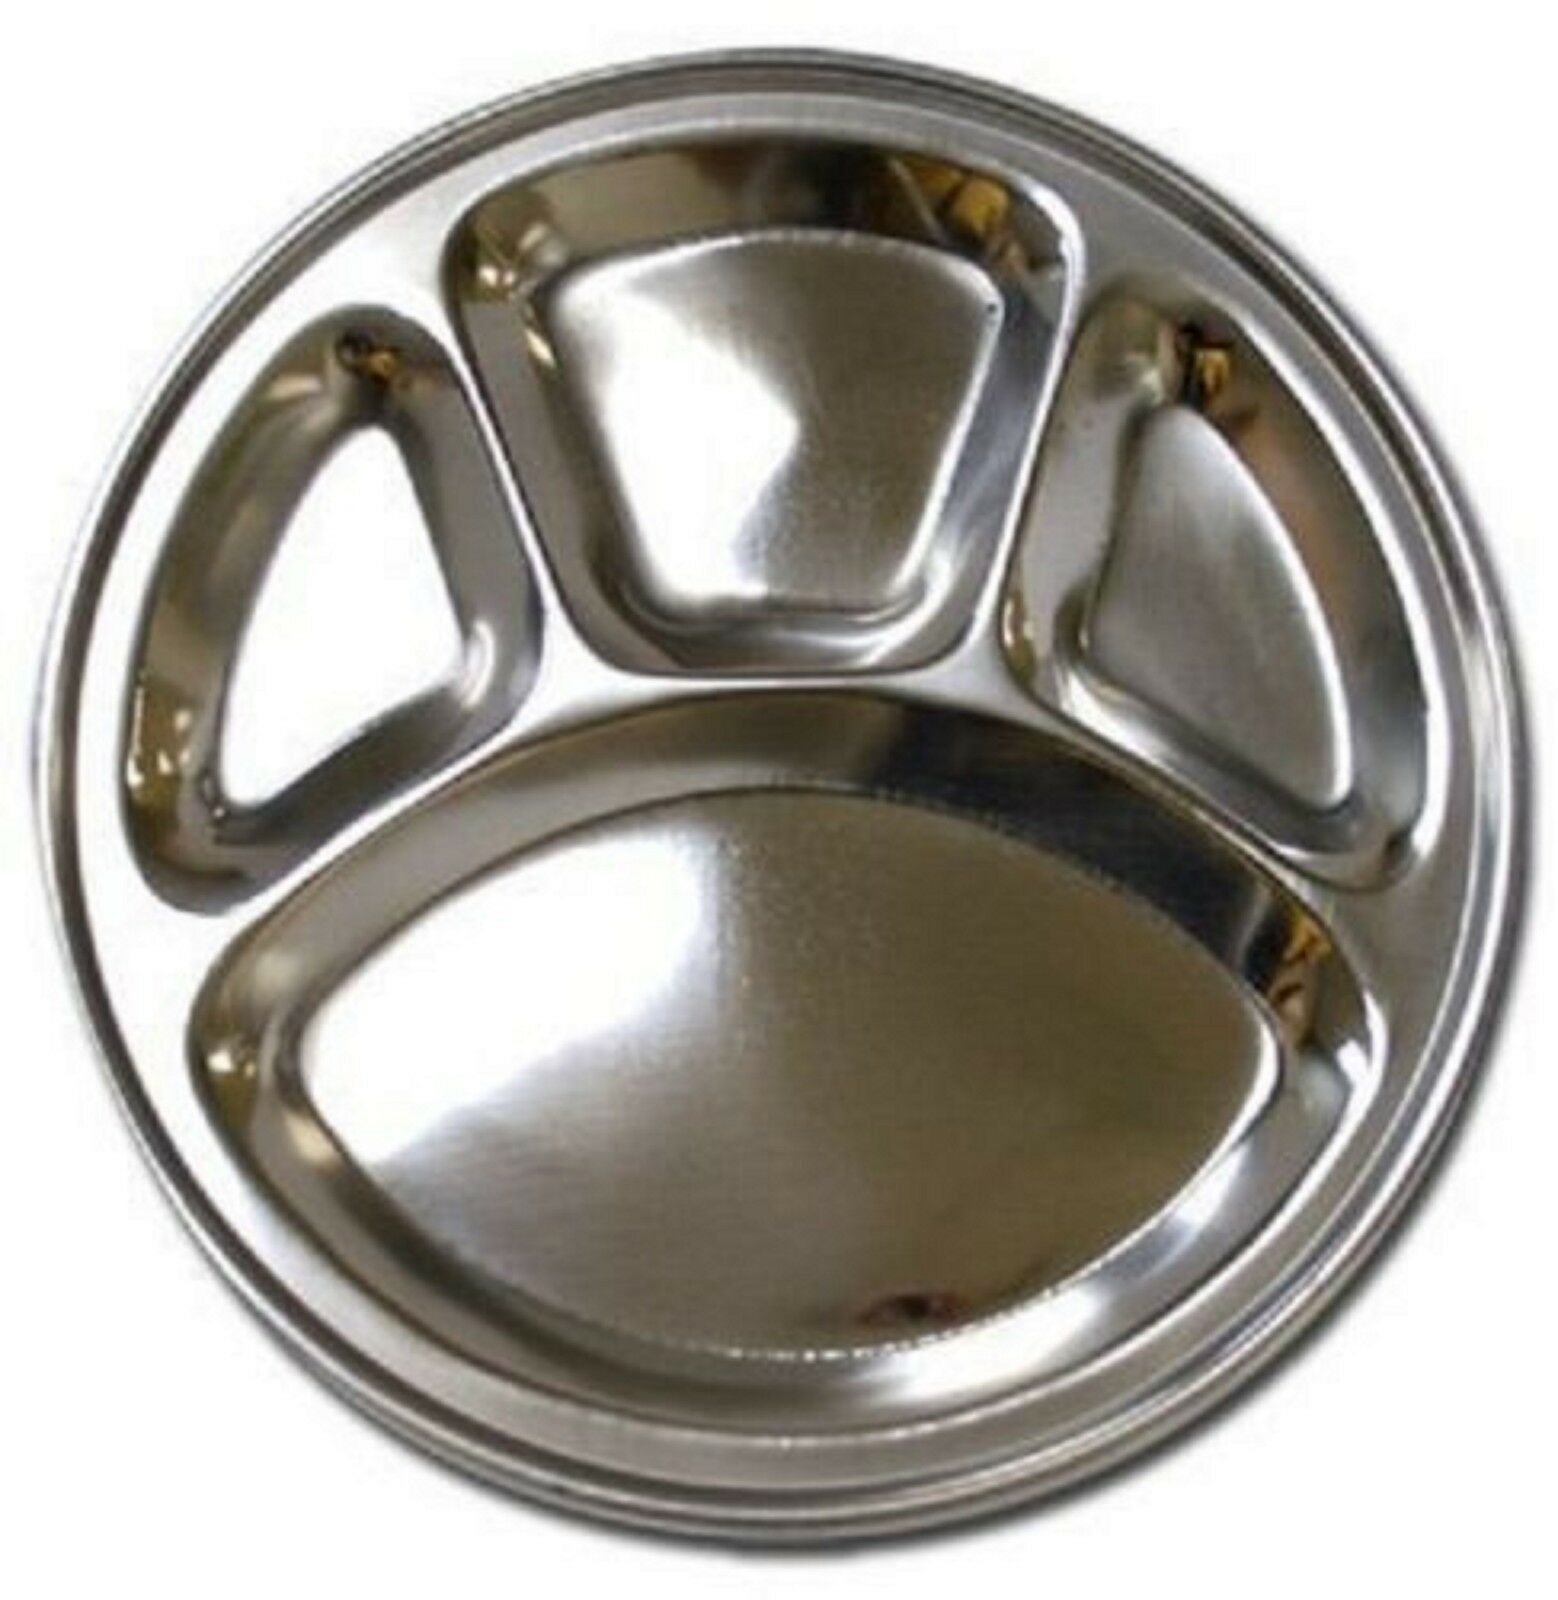 Stainless Steel Round Divided Dinner Plate in 4 Sections X 6 plate of set